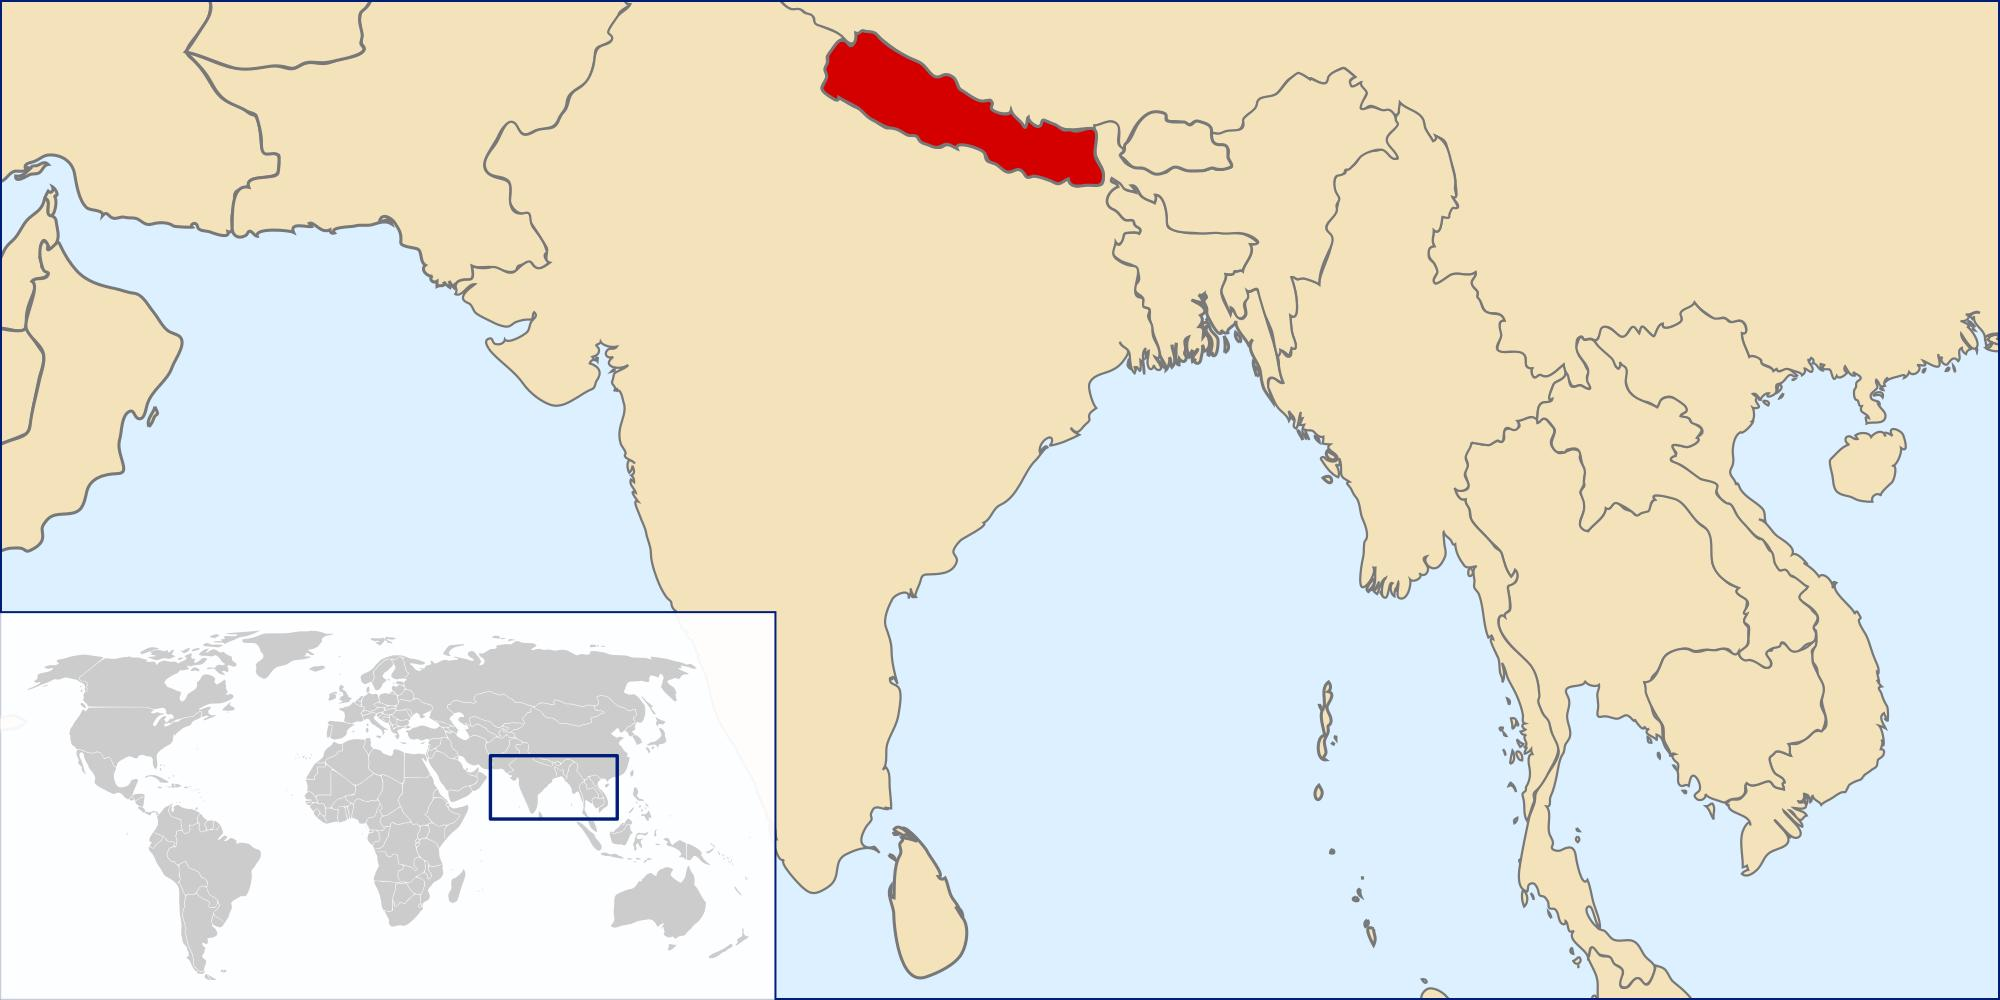 Nepal location on world map - Map of nepal location on world ...